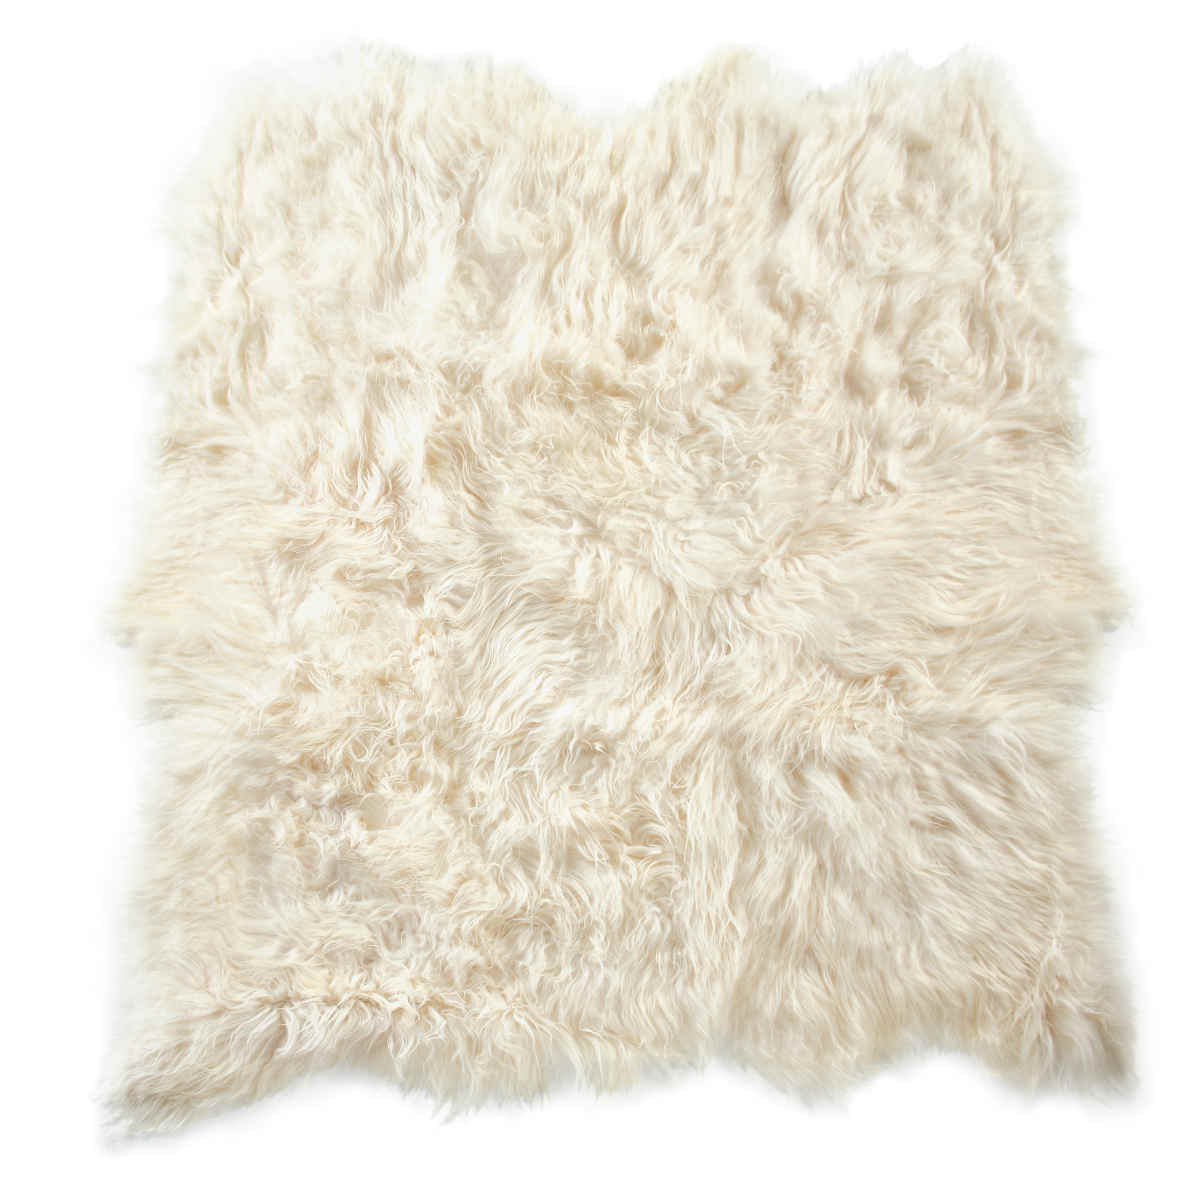 Fibre By Auskin Artic Icelandic Sheepskin Six Pelt Rug